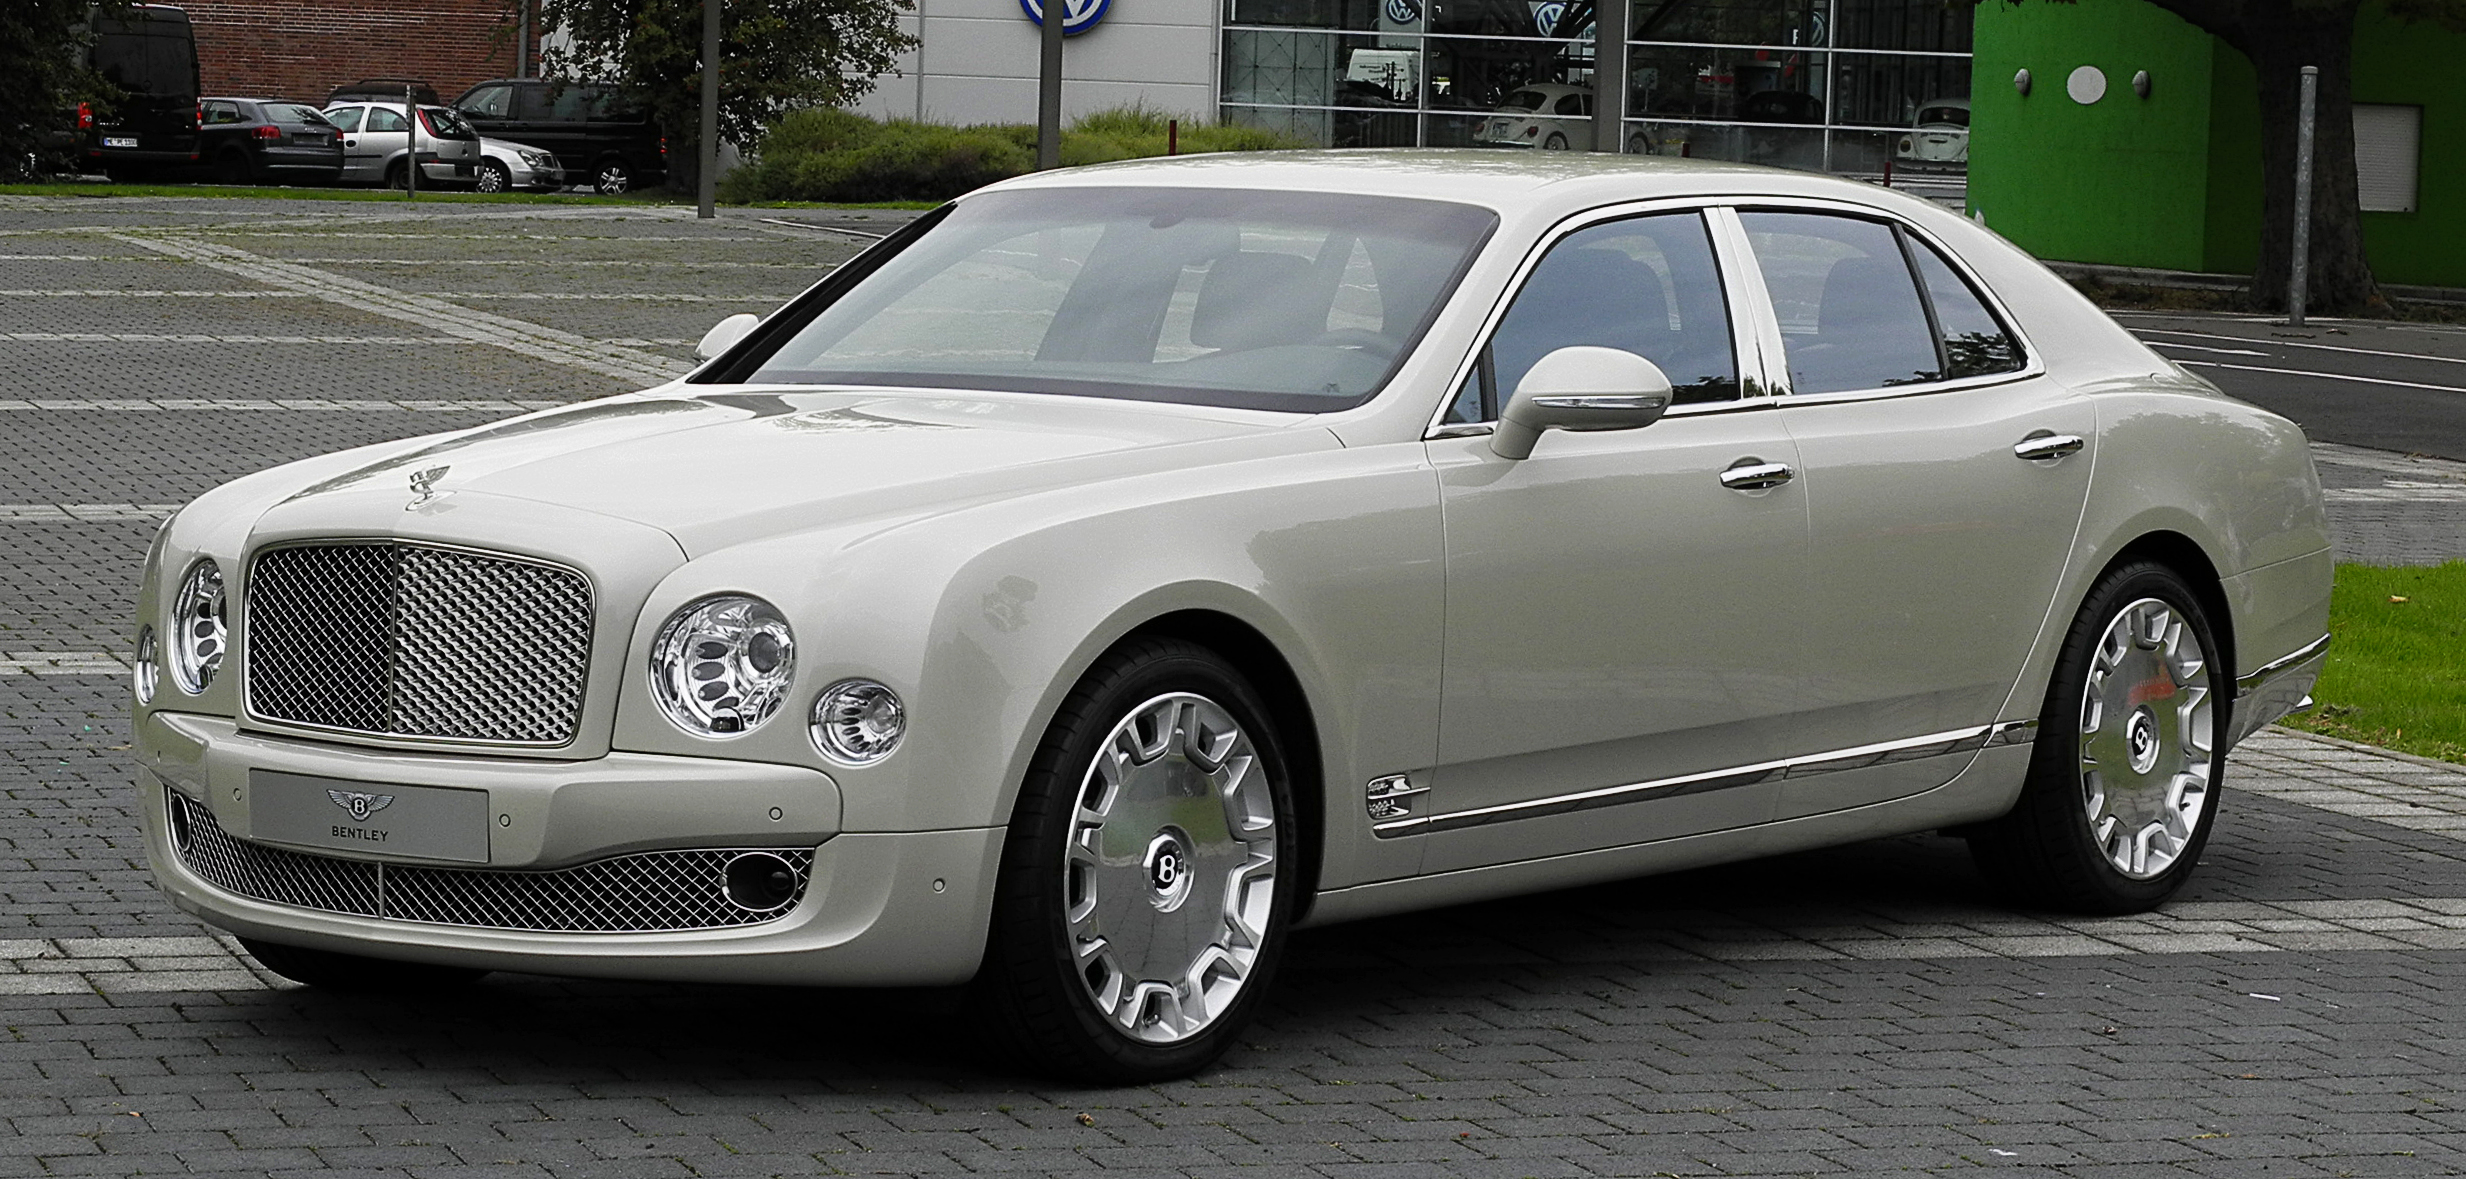 file bentley mulsanne frontansicht 6 30 august 2011 d wikimedia commons. Black Bedroom Furniture Sets. Home Design Ideas